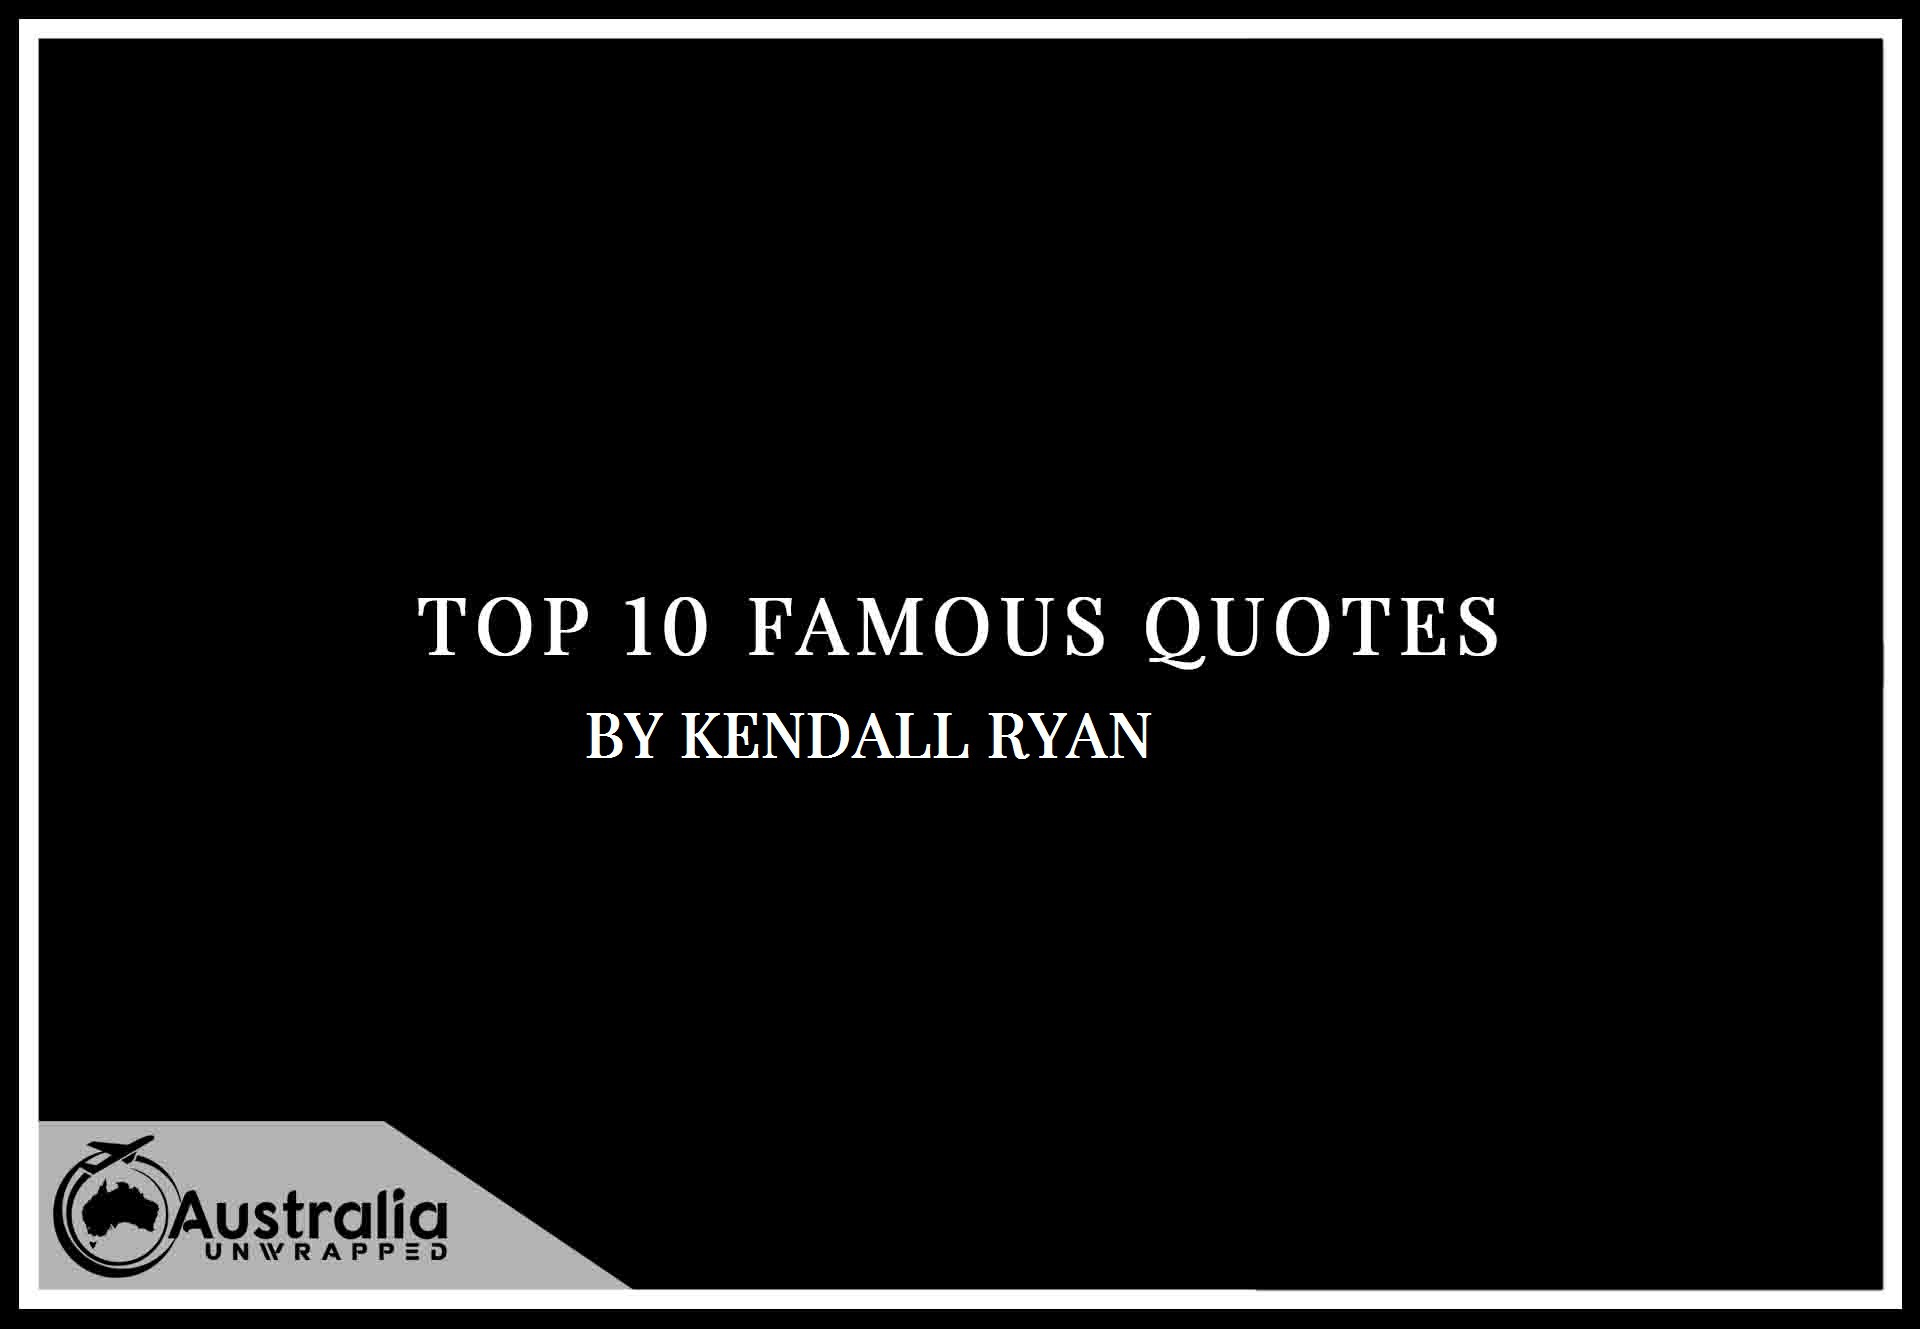 Kendall Ryan's Top 10 Popular and Famous Quotes